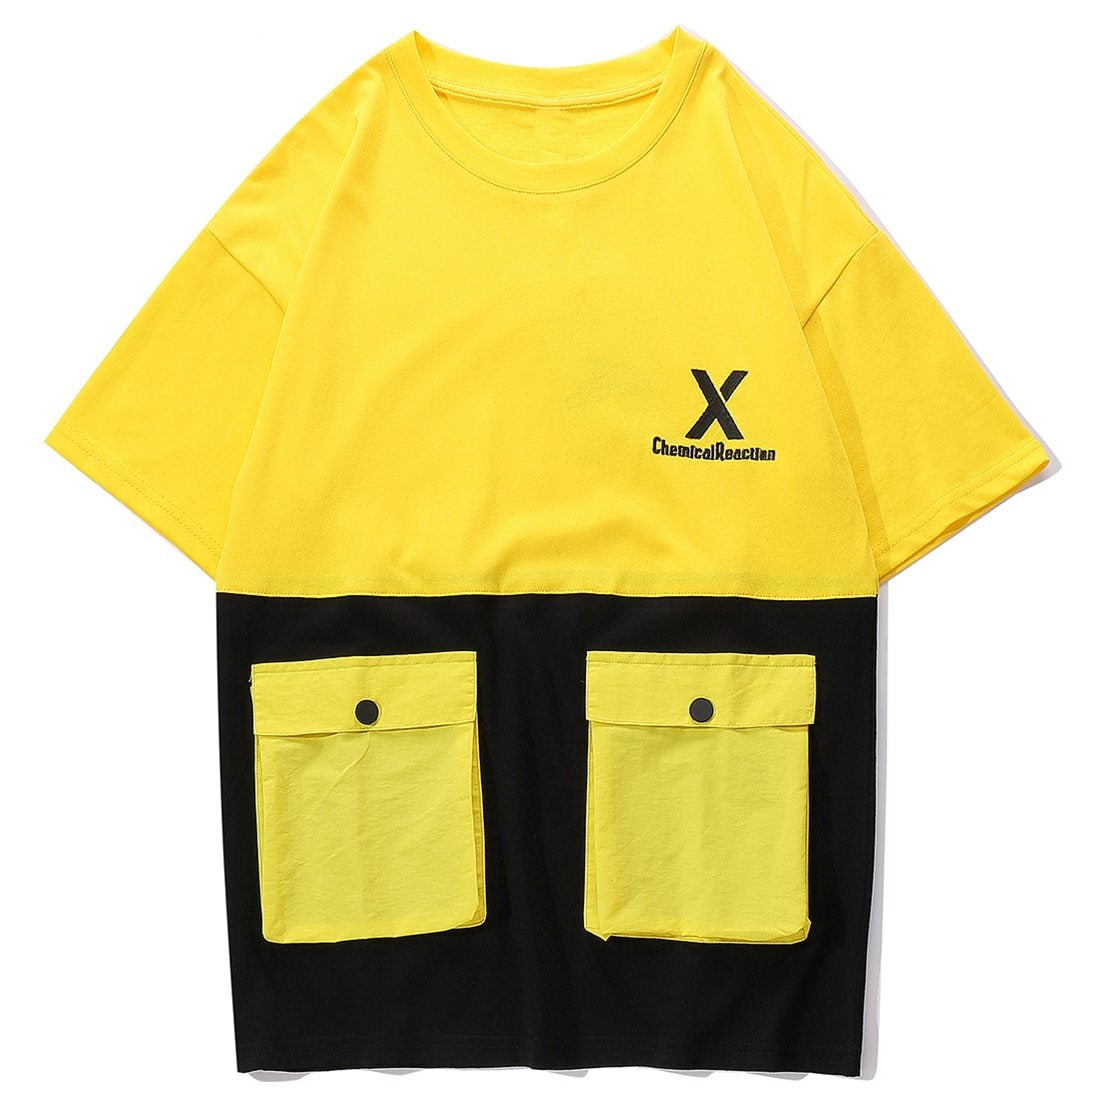 ContraX 'Reaction' Tee